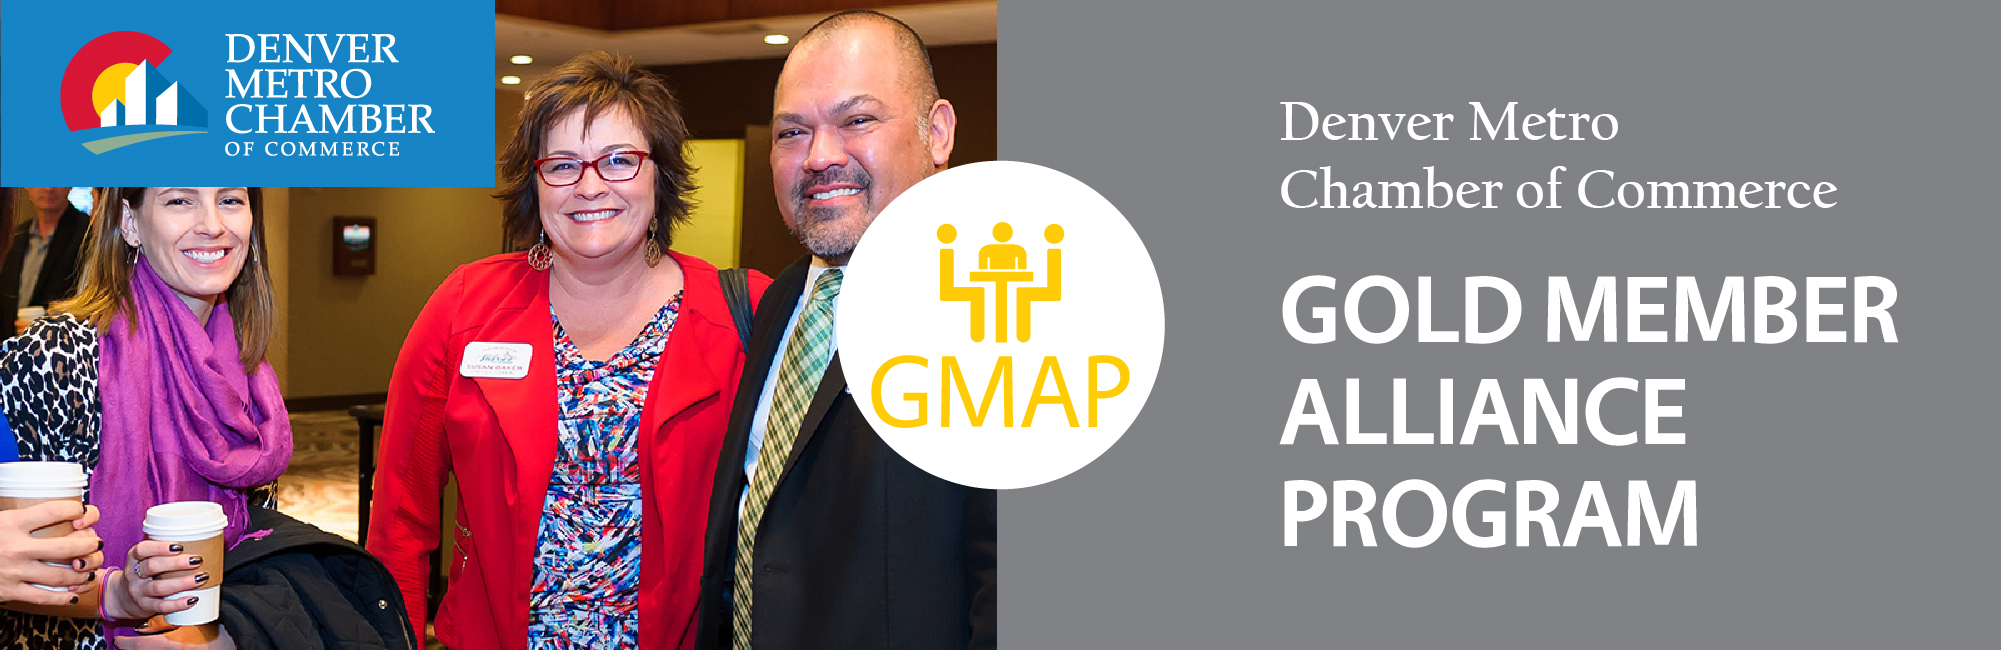 Gold Member Alliance Program (GMAP) - September